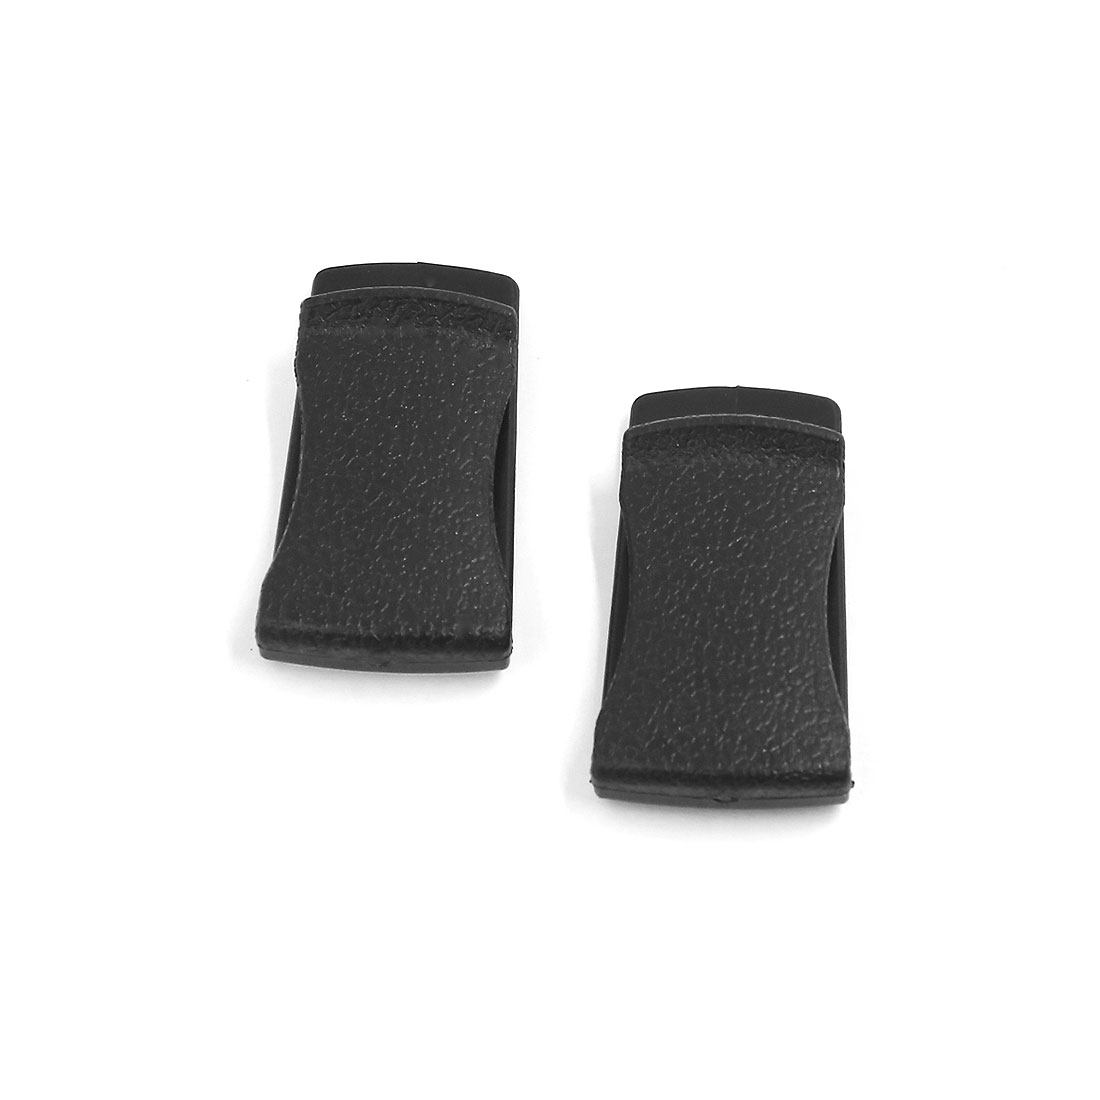 Car Interior Side Door Mount Card Bill Paper Storage Organiser Holder Clip Black 2pcs